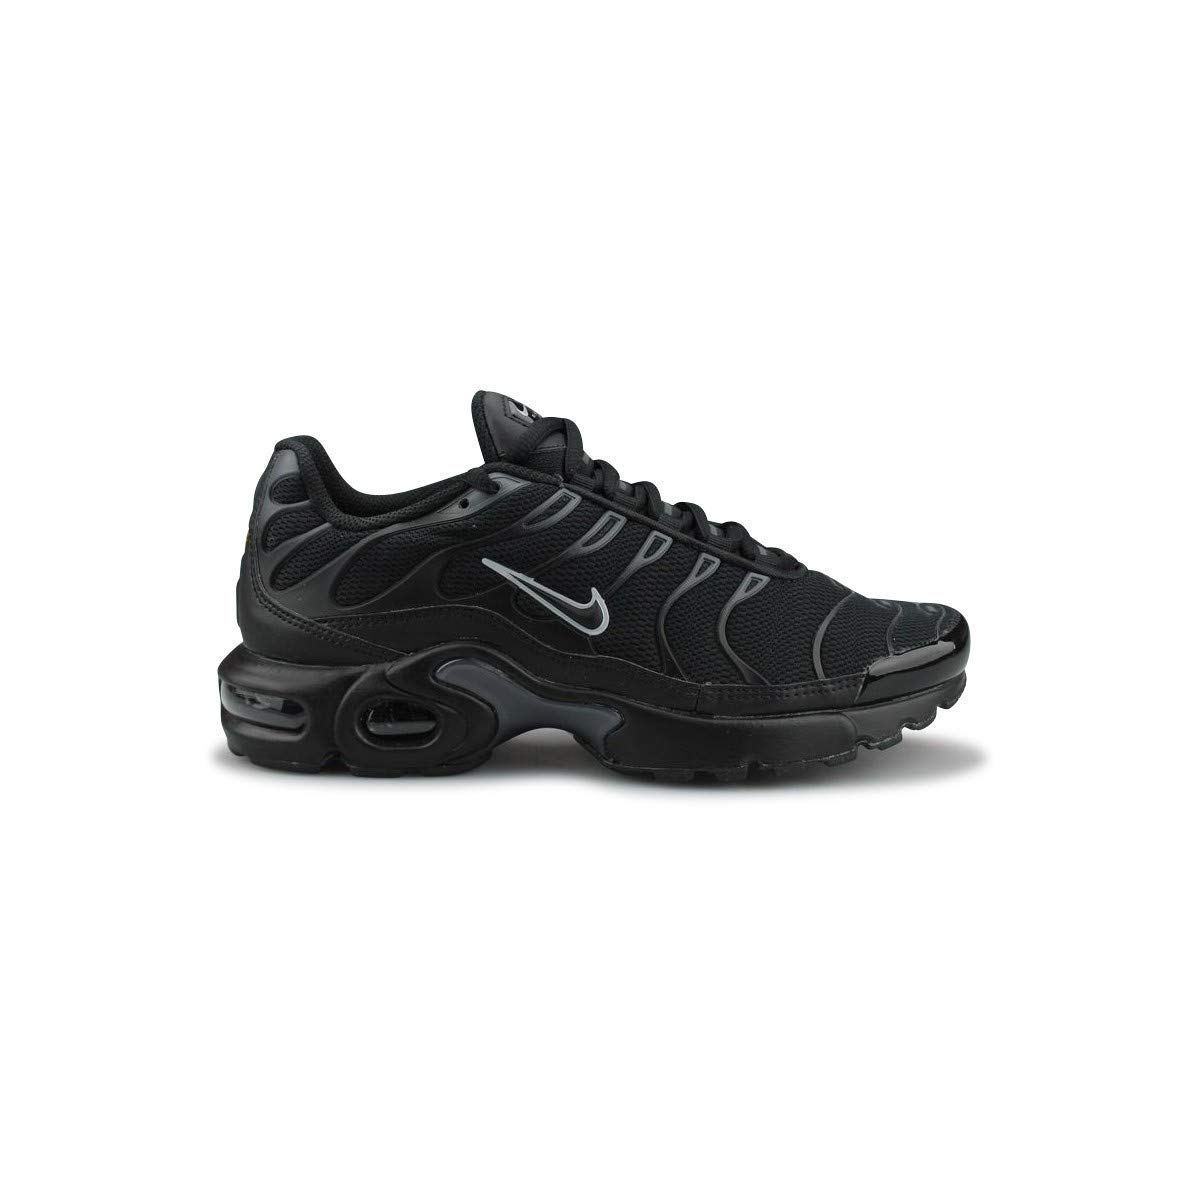 Nike Air Max Max Max Plus (GS) B07F224Z6M  8a937c